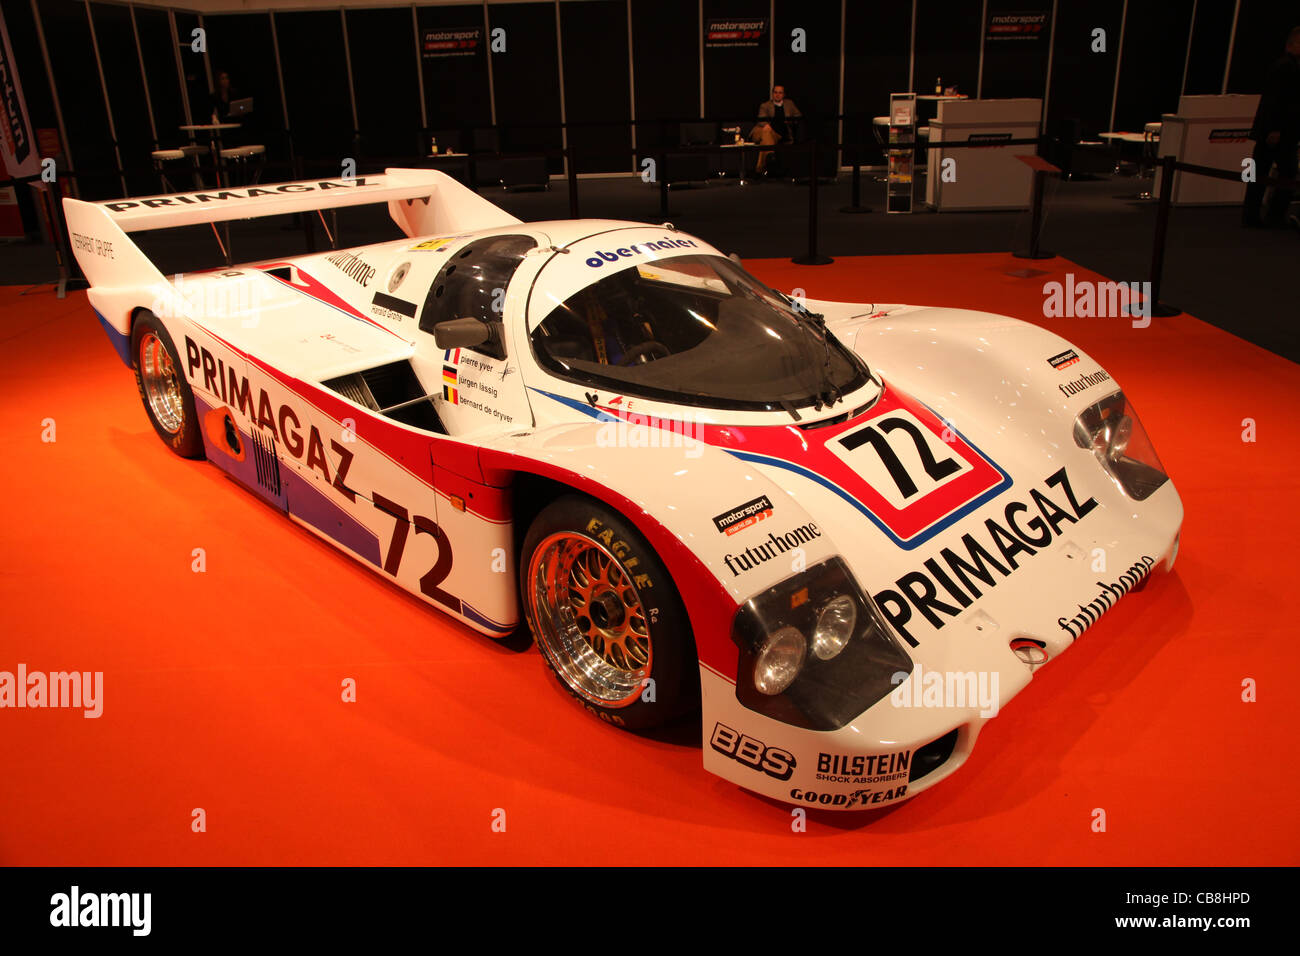 Porsche 926 C Le Mans Racing Car from 1987 shown at the Essen Motor Show in Essen, Germany, on November Stock Photo